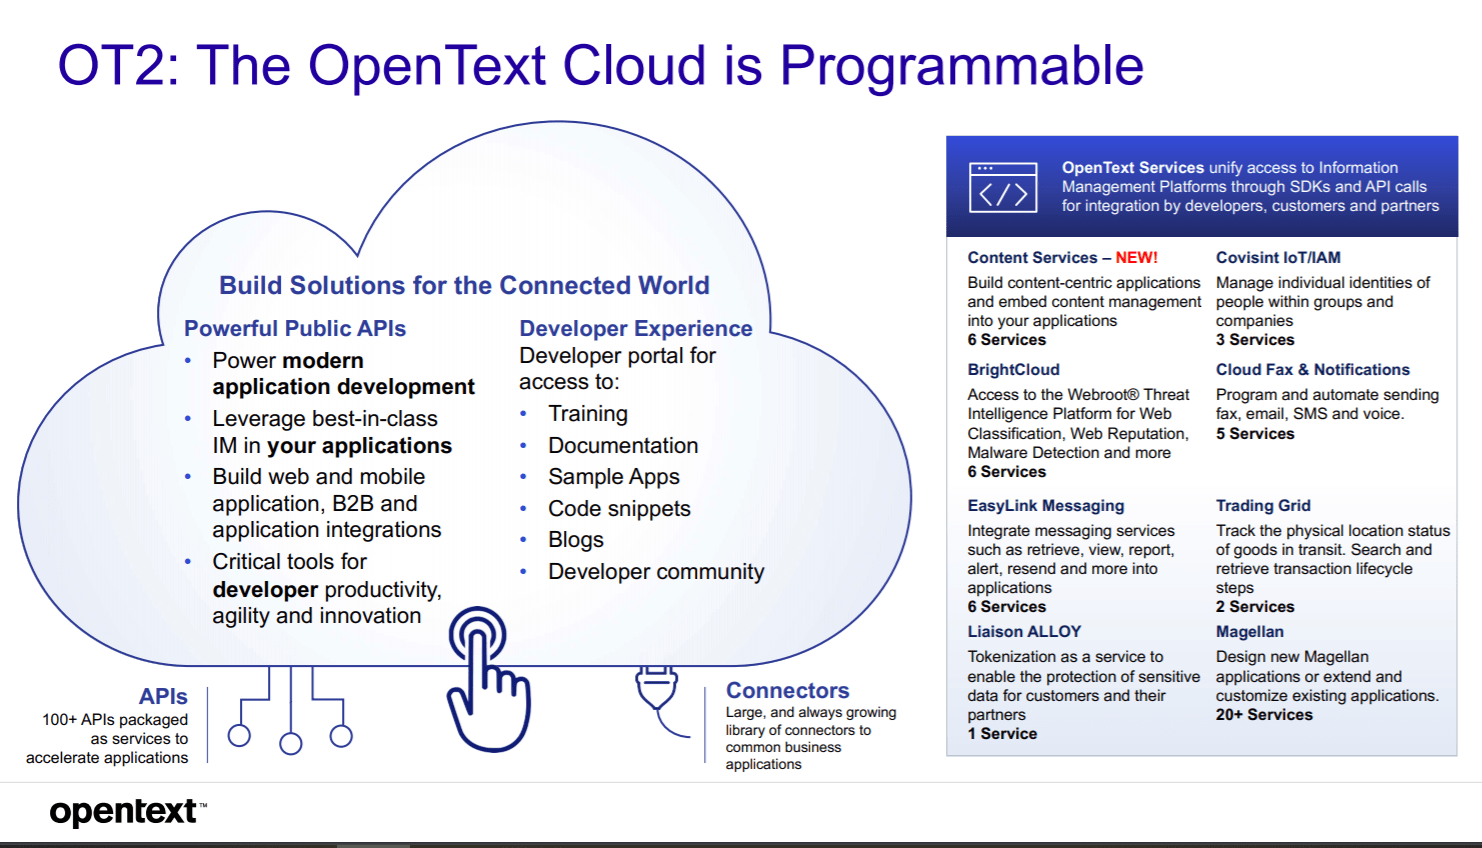 opentext OT2 cloud saas products and solutions